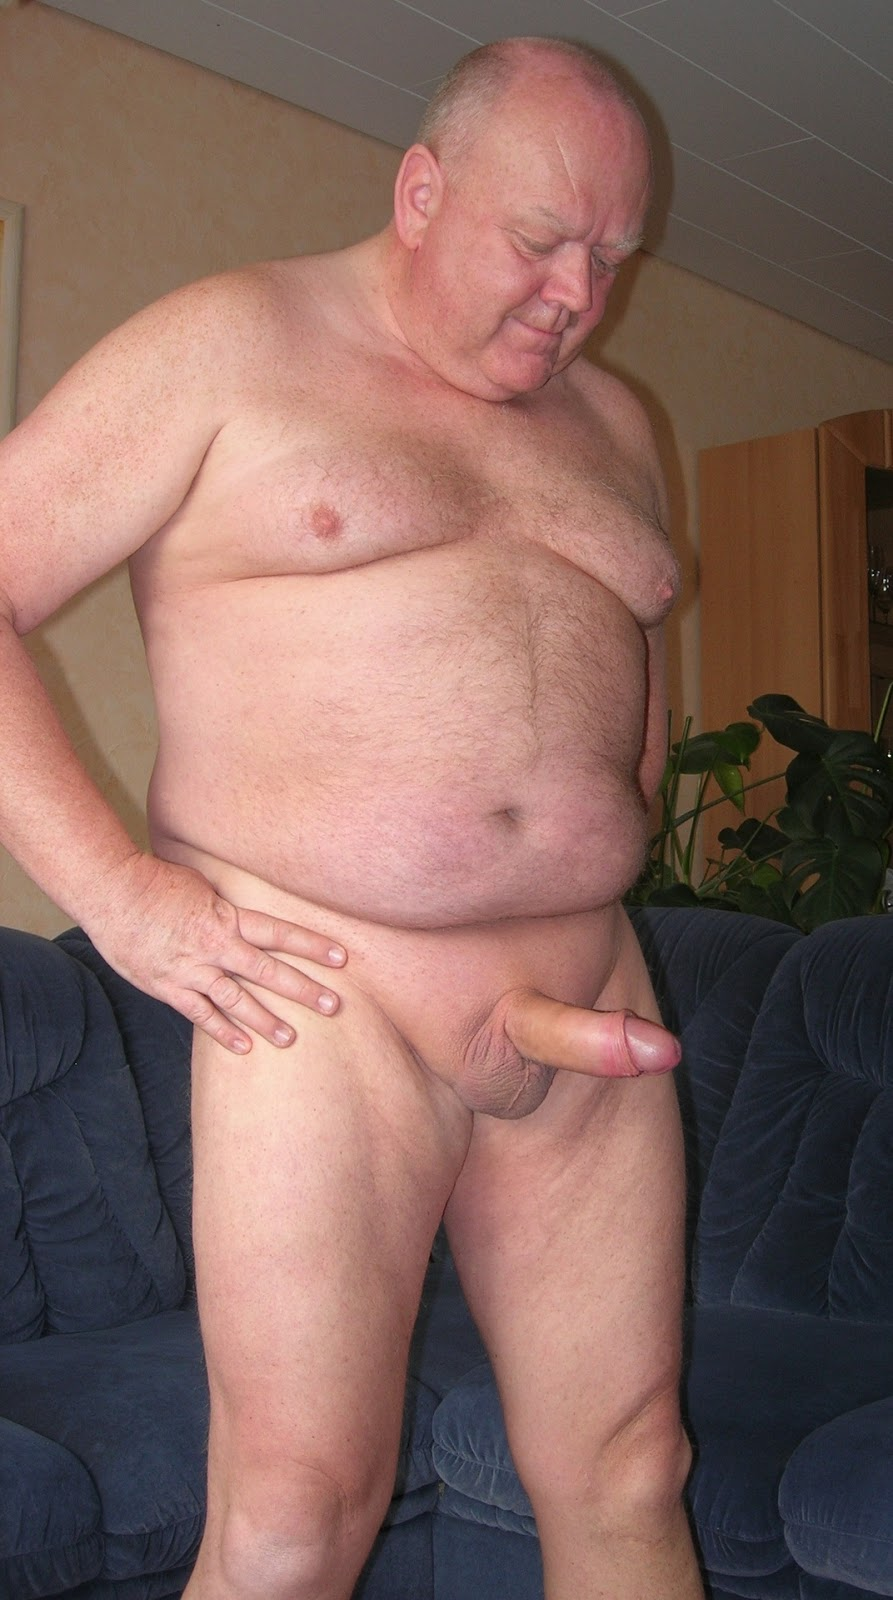 chubby guys with fat cocks gay